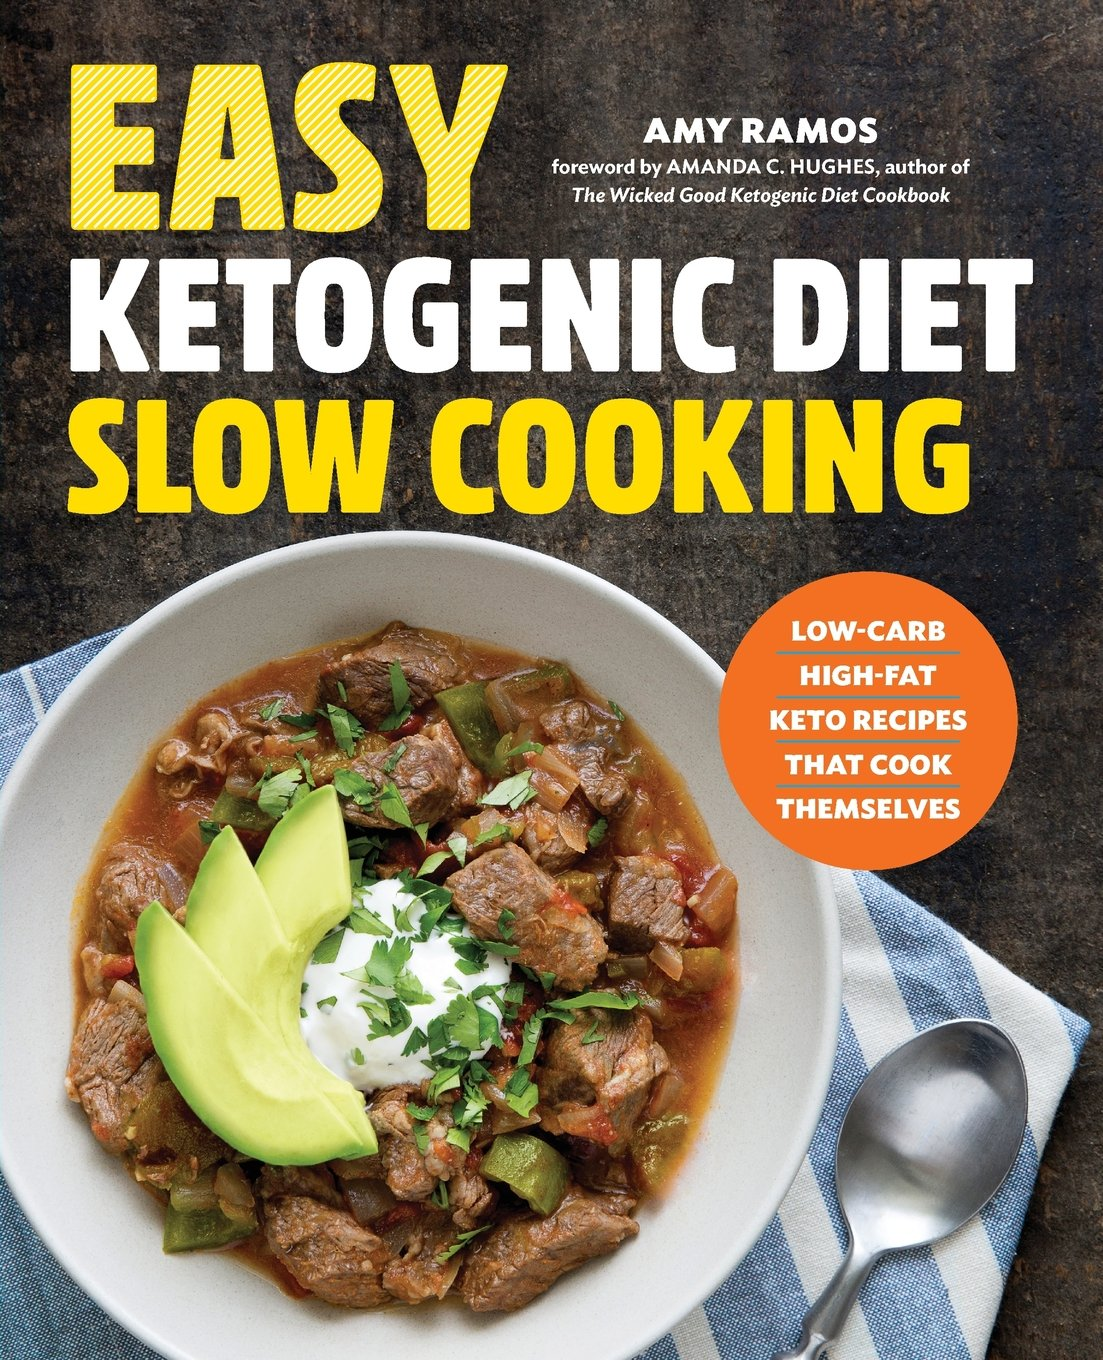 Easy ketogenic diet slow cooking low carb high fat keto recipes easy ketogenic diet slow cooking low carb high fat keto recipes that cook themselves amy ramos 9781623159221 amazon books forumfinder Gallery